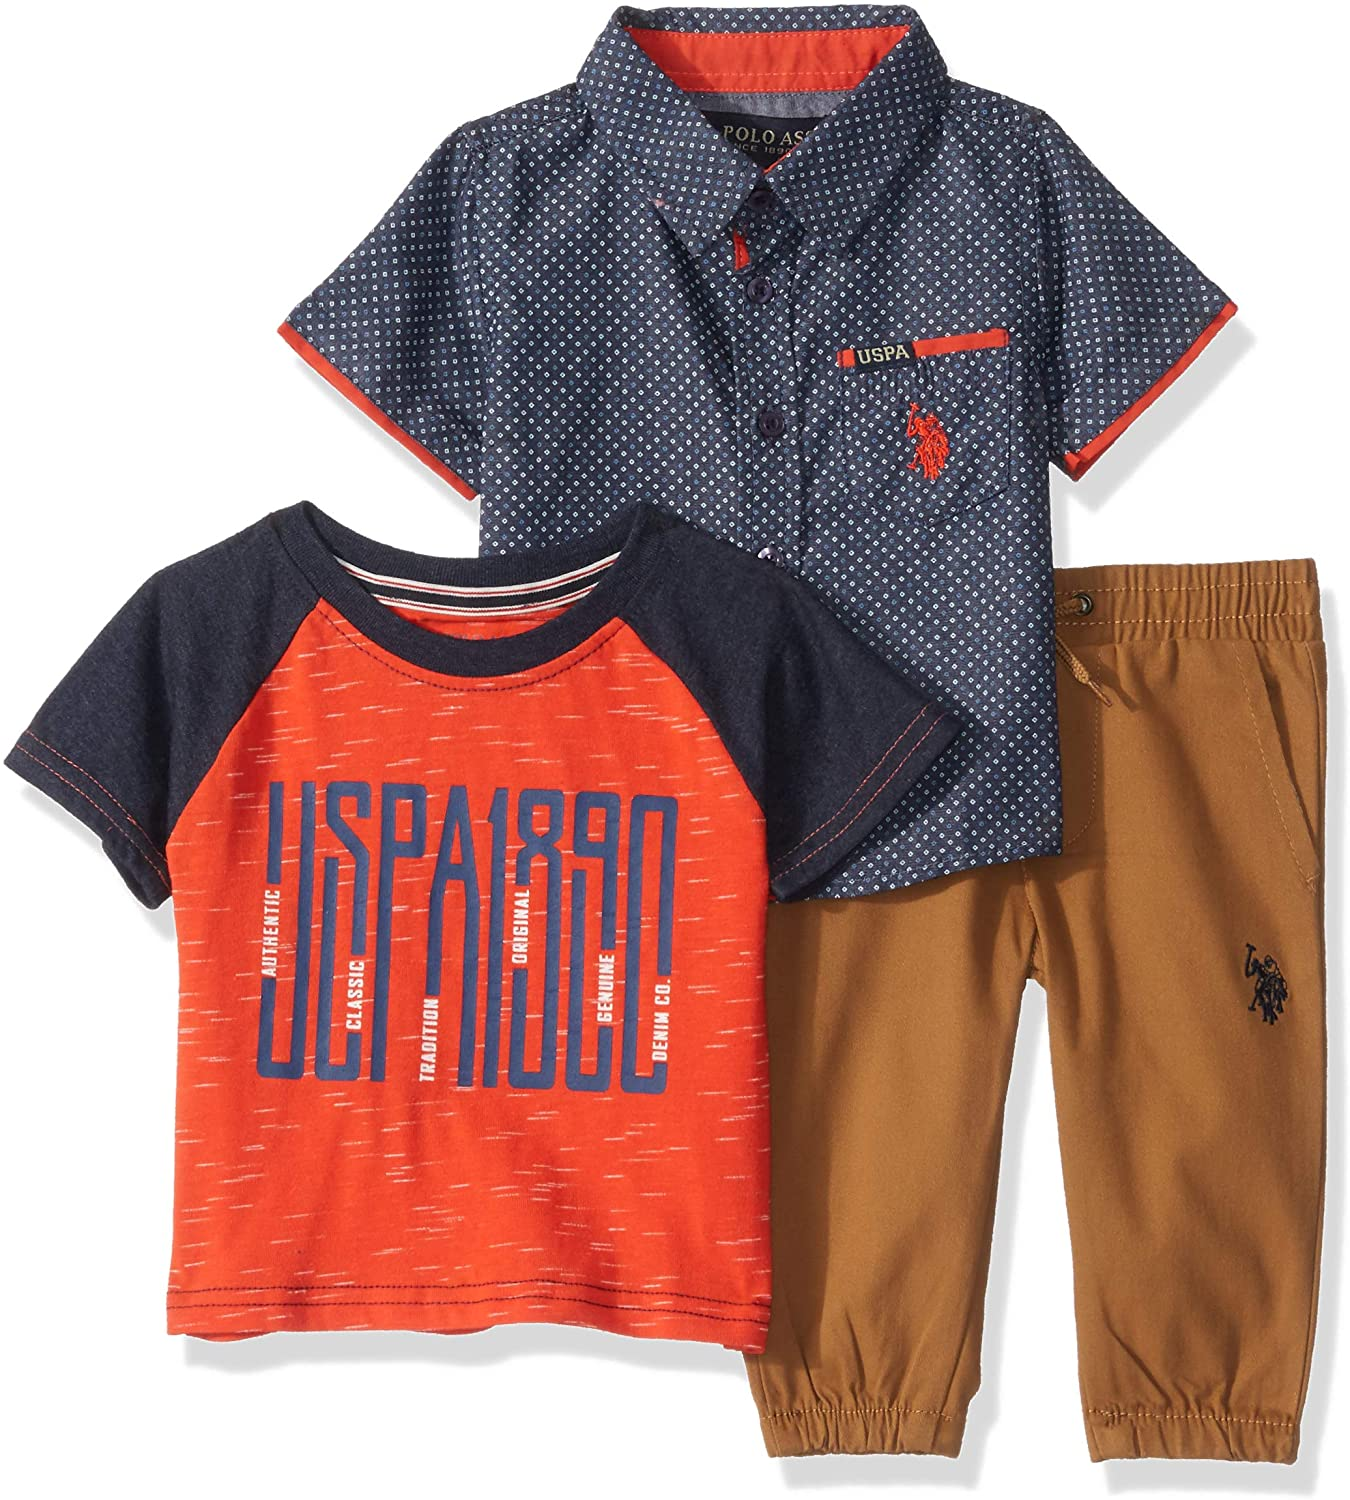 U.S. Polo Assn. Baby Boy's Short Sleeve Printed Woven Shirt, T-Shirt, and Jogger Set Pants